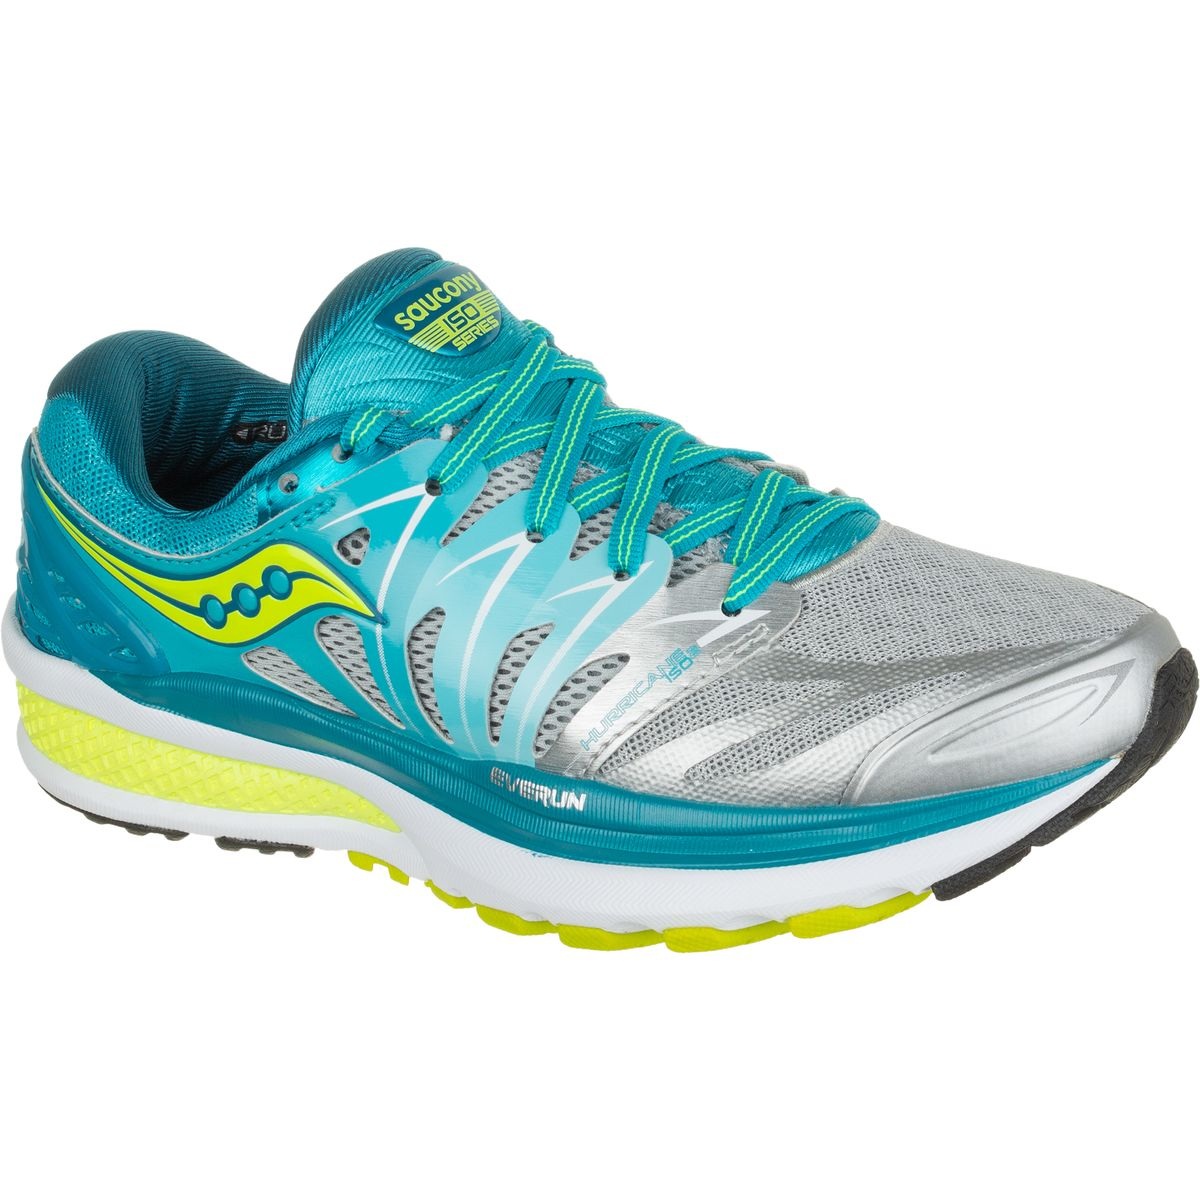 Saucony Everun Hurricane Iso 2 Running Shoe Women's